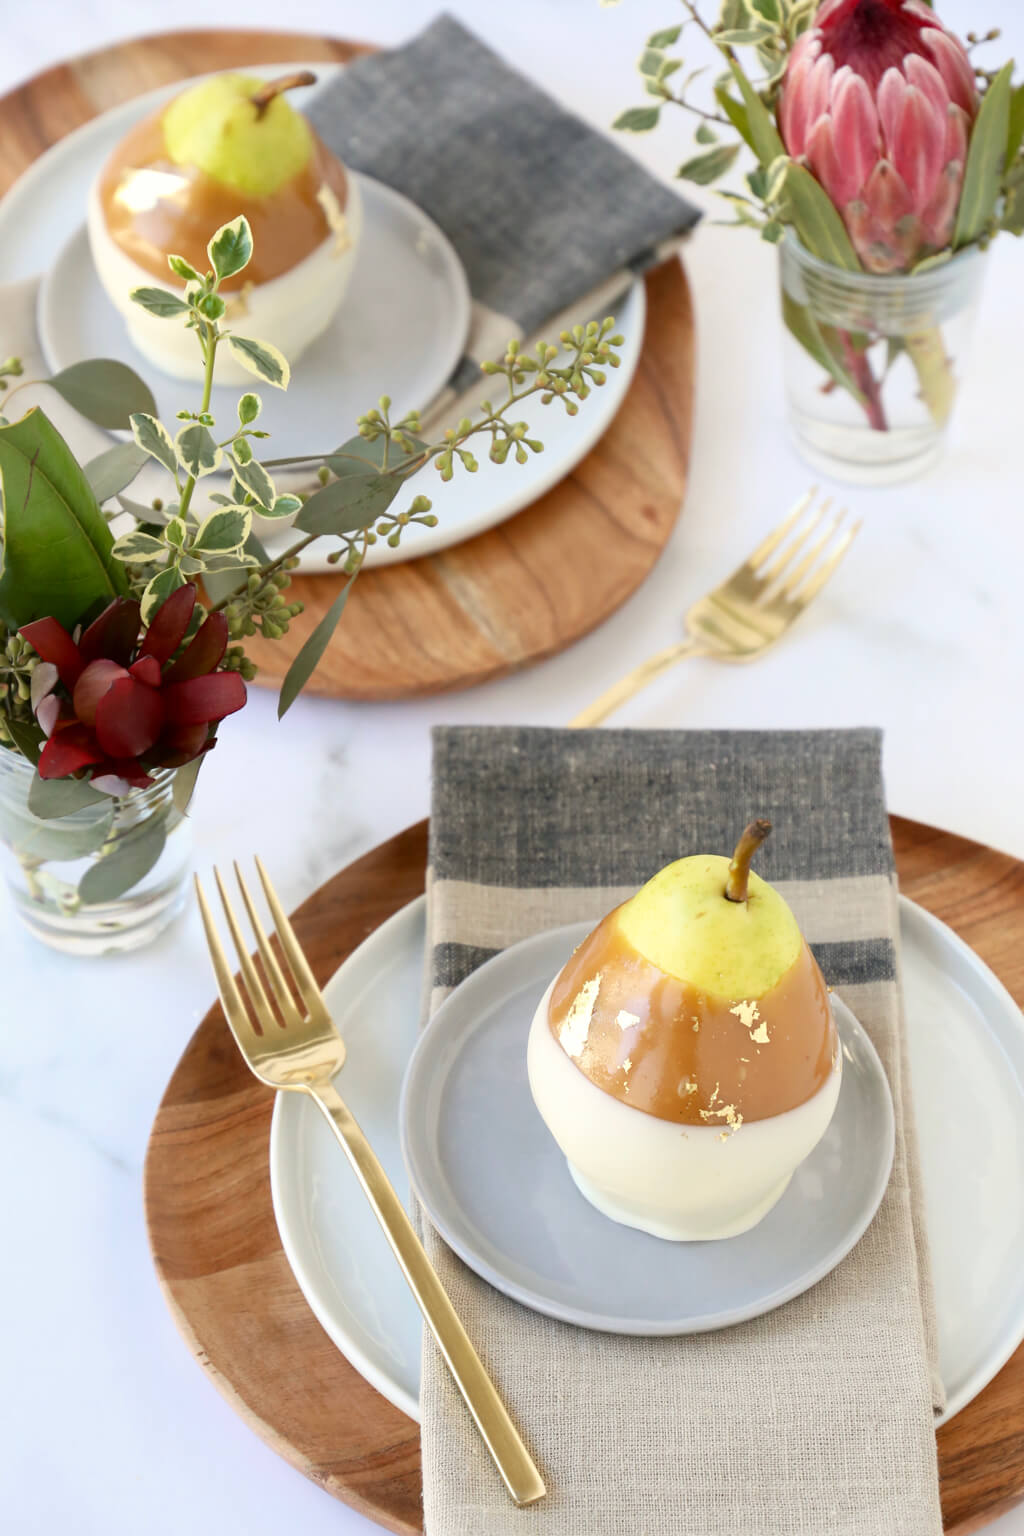 a table set with plates, napkins, forks, flowers and caramel pears